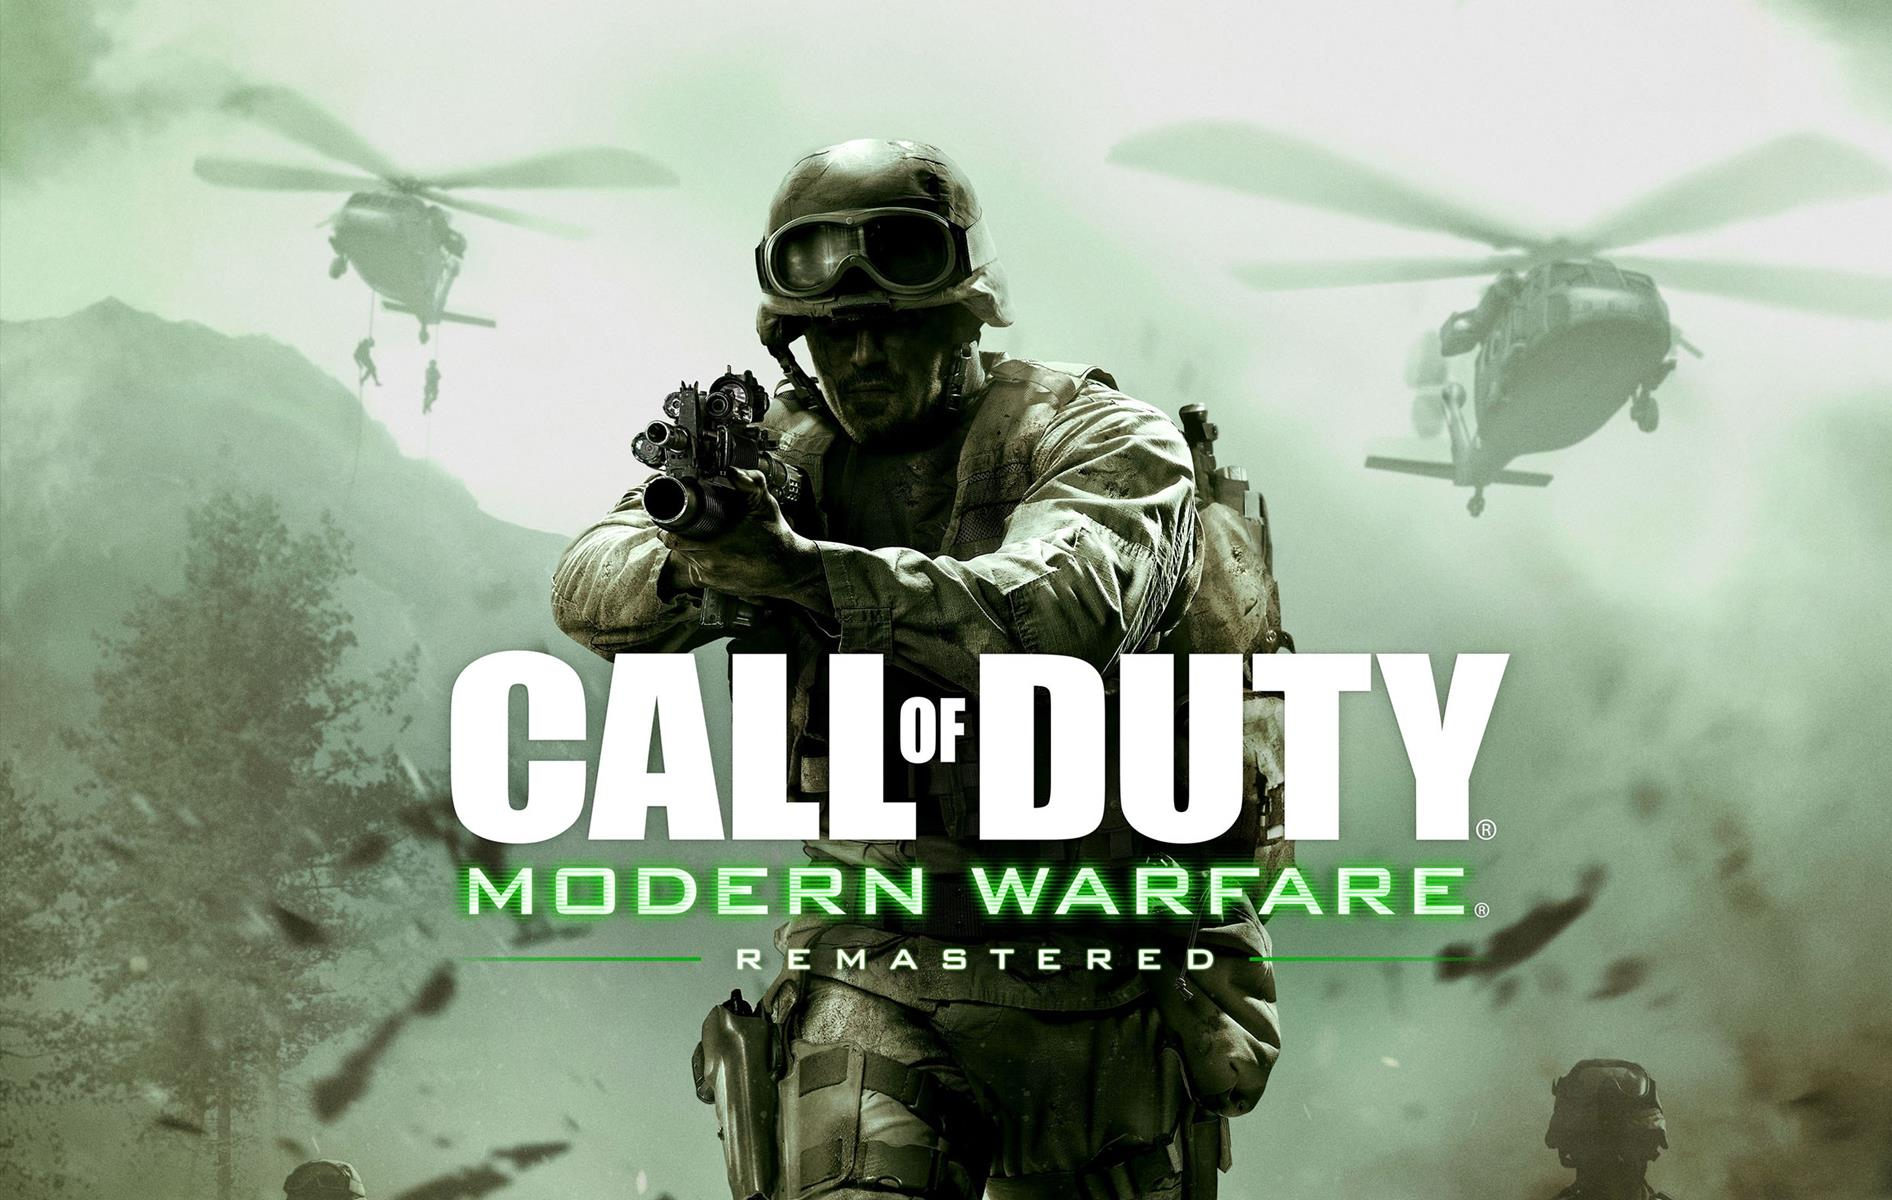 Call of Duty: Modern Warfare Remastered Standalone Release Confirmed